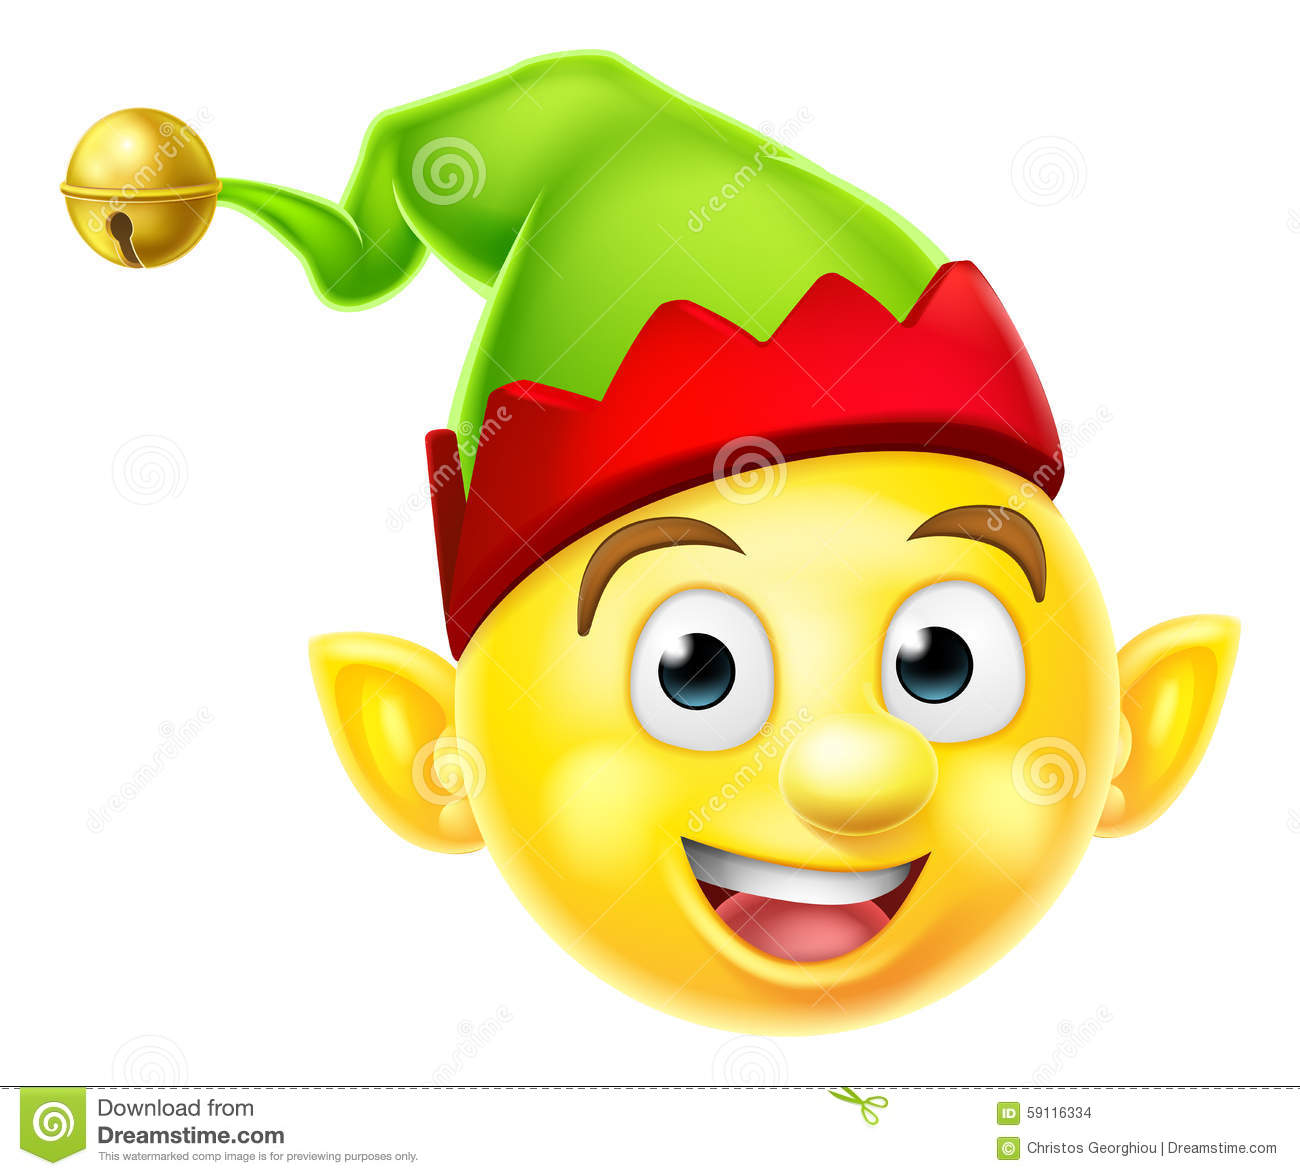 Christmas Elf Emoticon Stock Vector - Image: 59116334